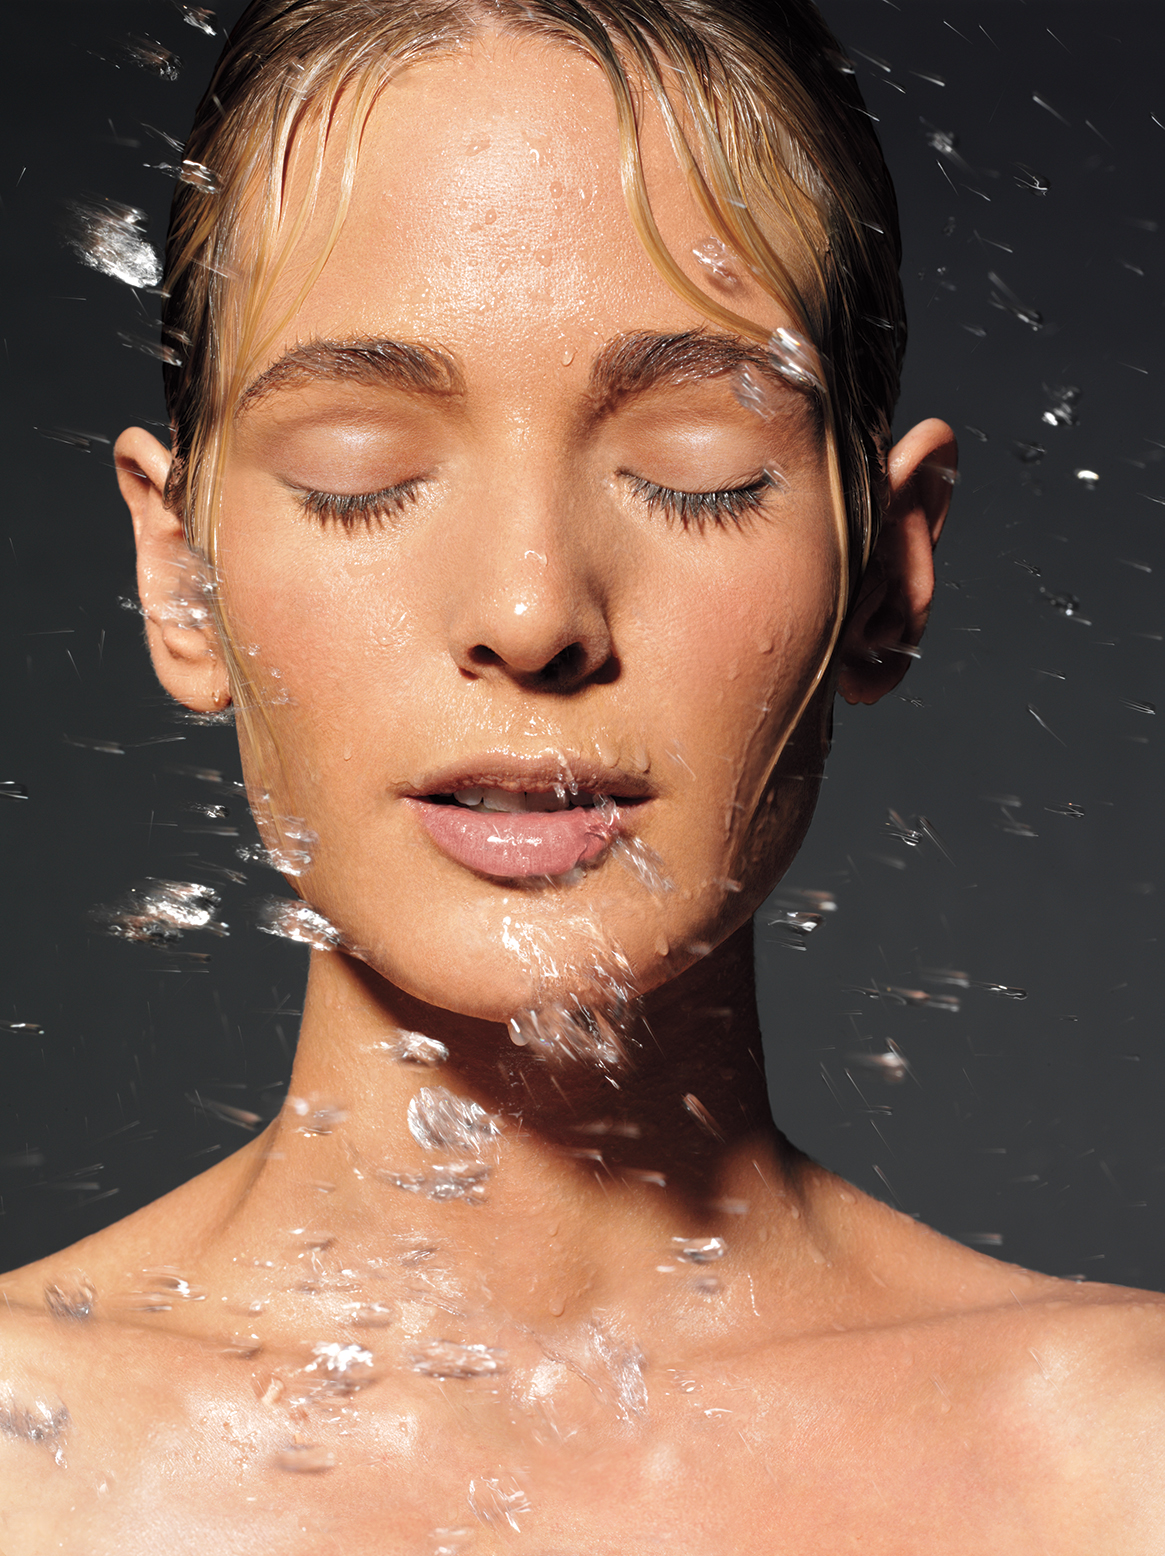 Woman with water splashing on her face